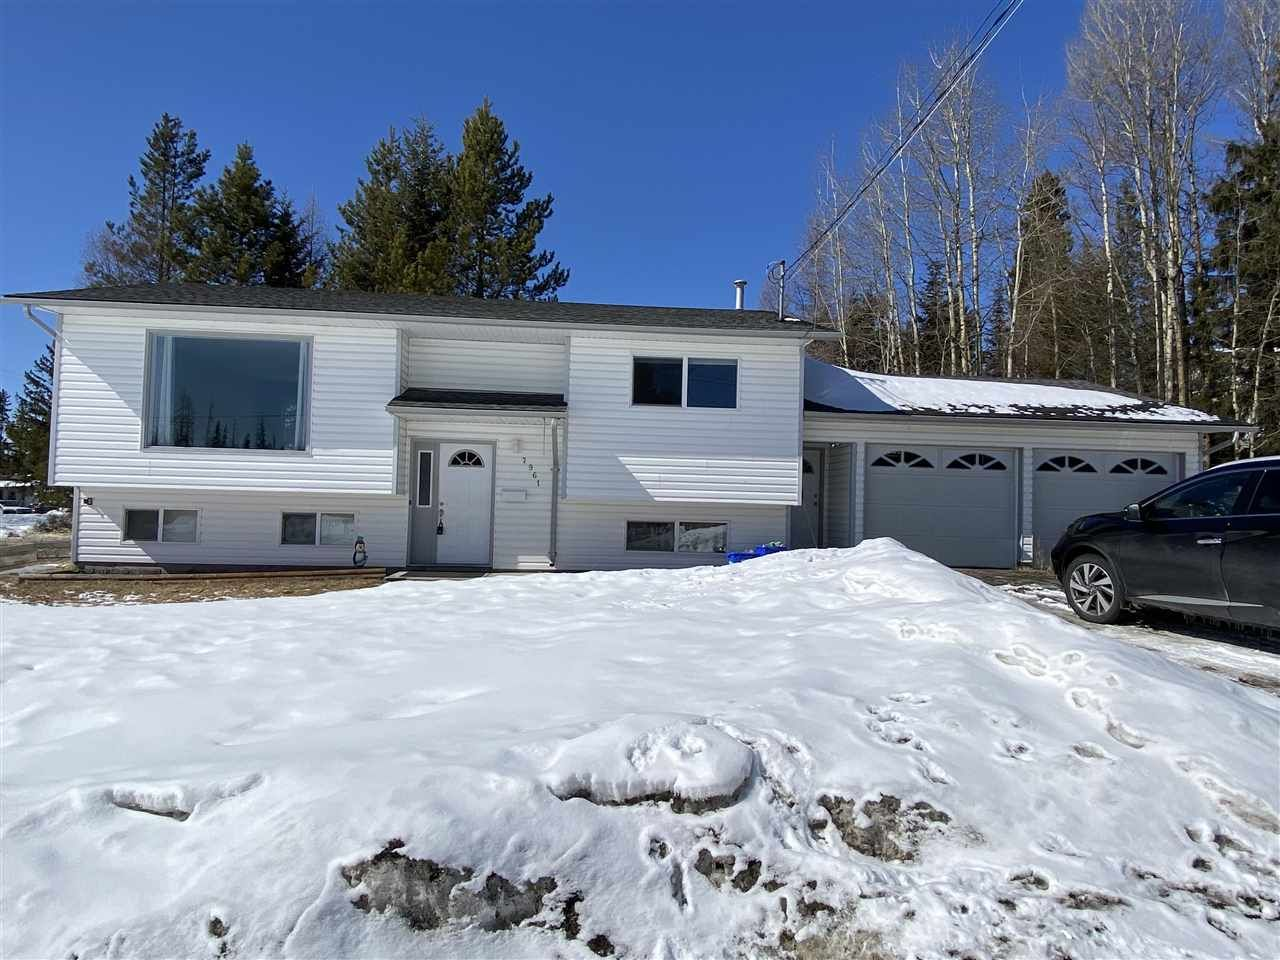 """Main Photo: 7961 ROSEWOOD Place in Prince George: Parkridge House for sale in """"PARKRIDGE"""" (PG City South (Zone 74))  : MLS®# R2448828"""